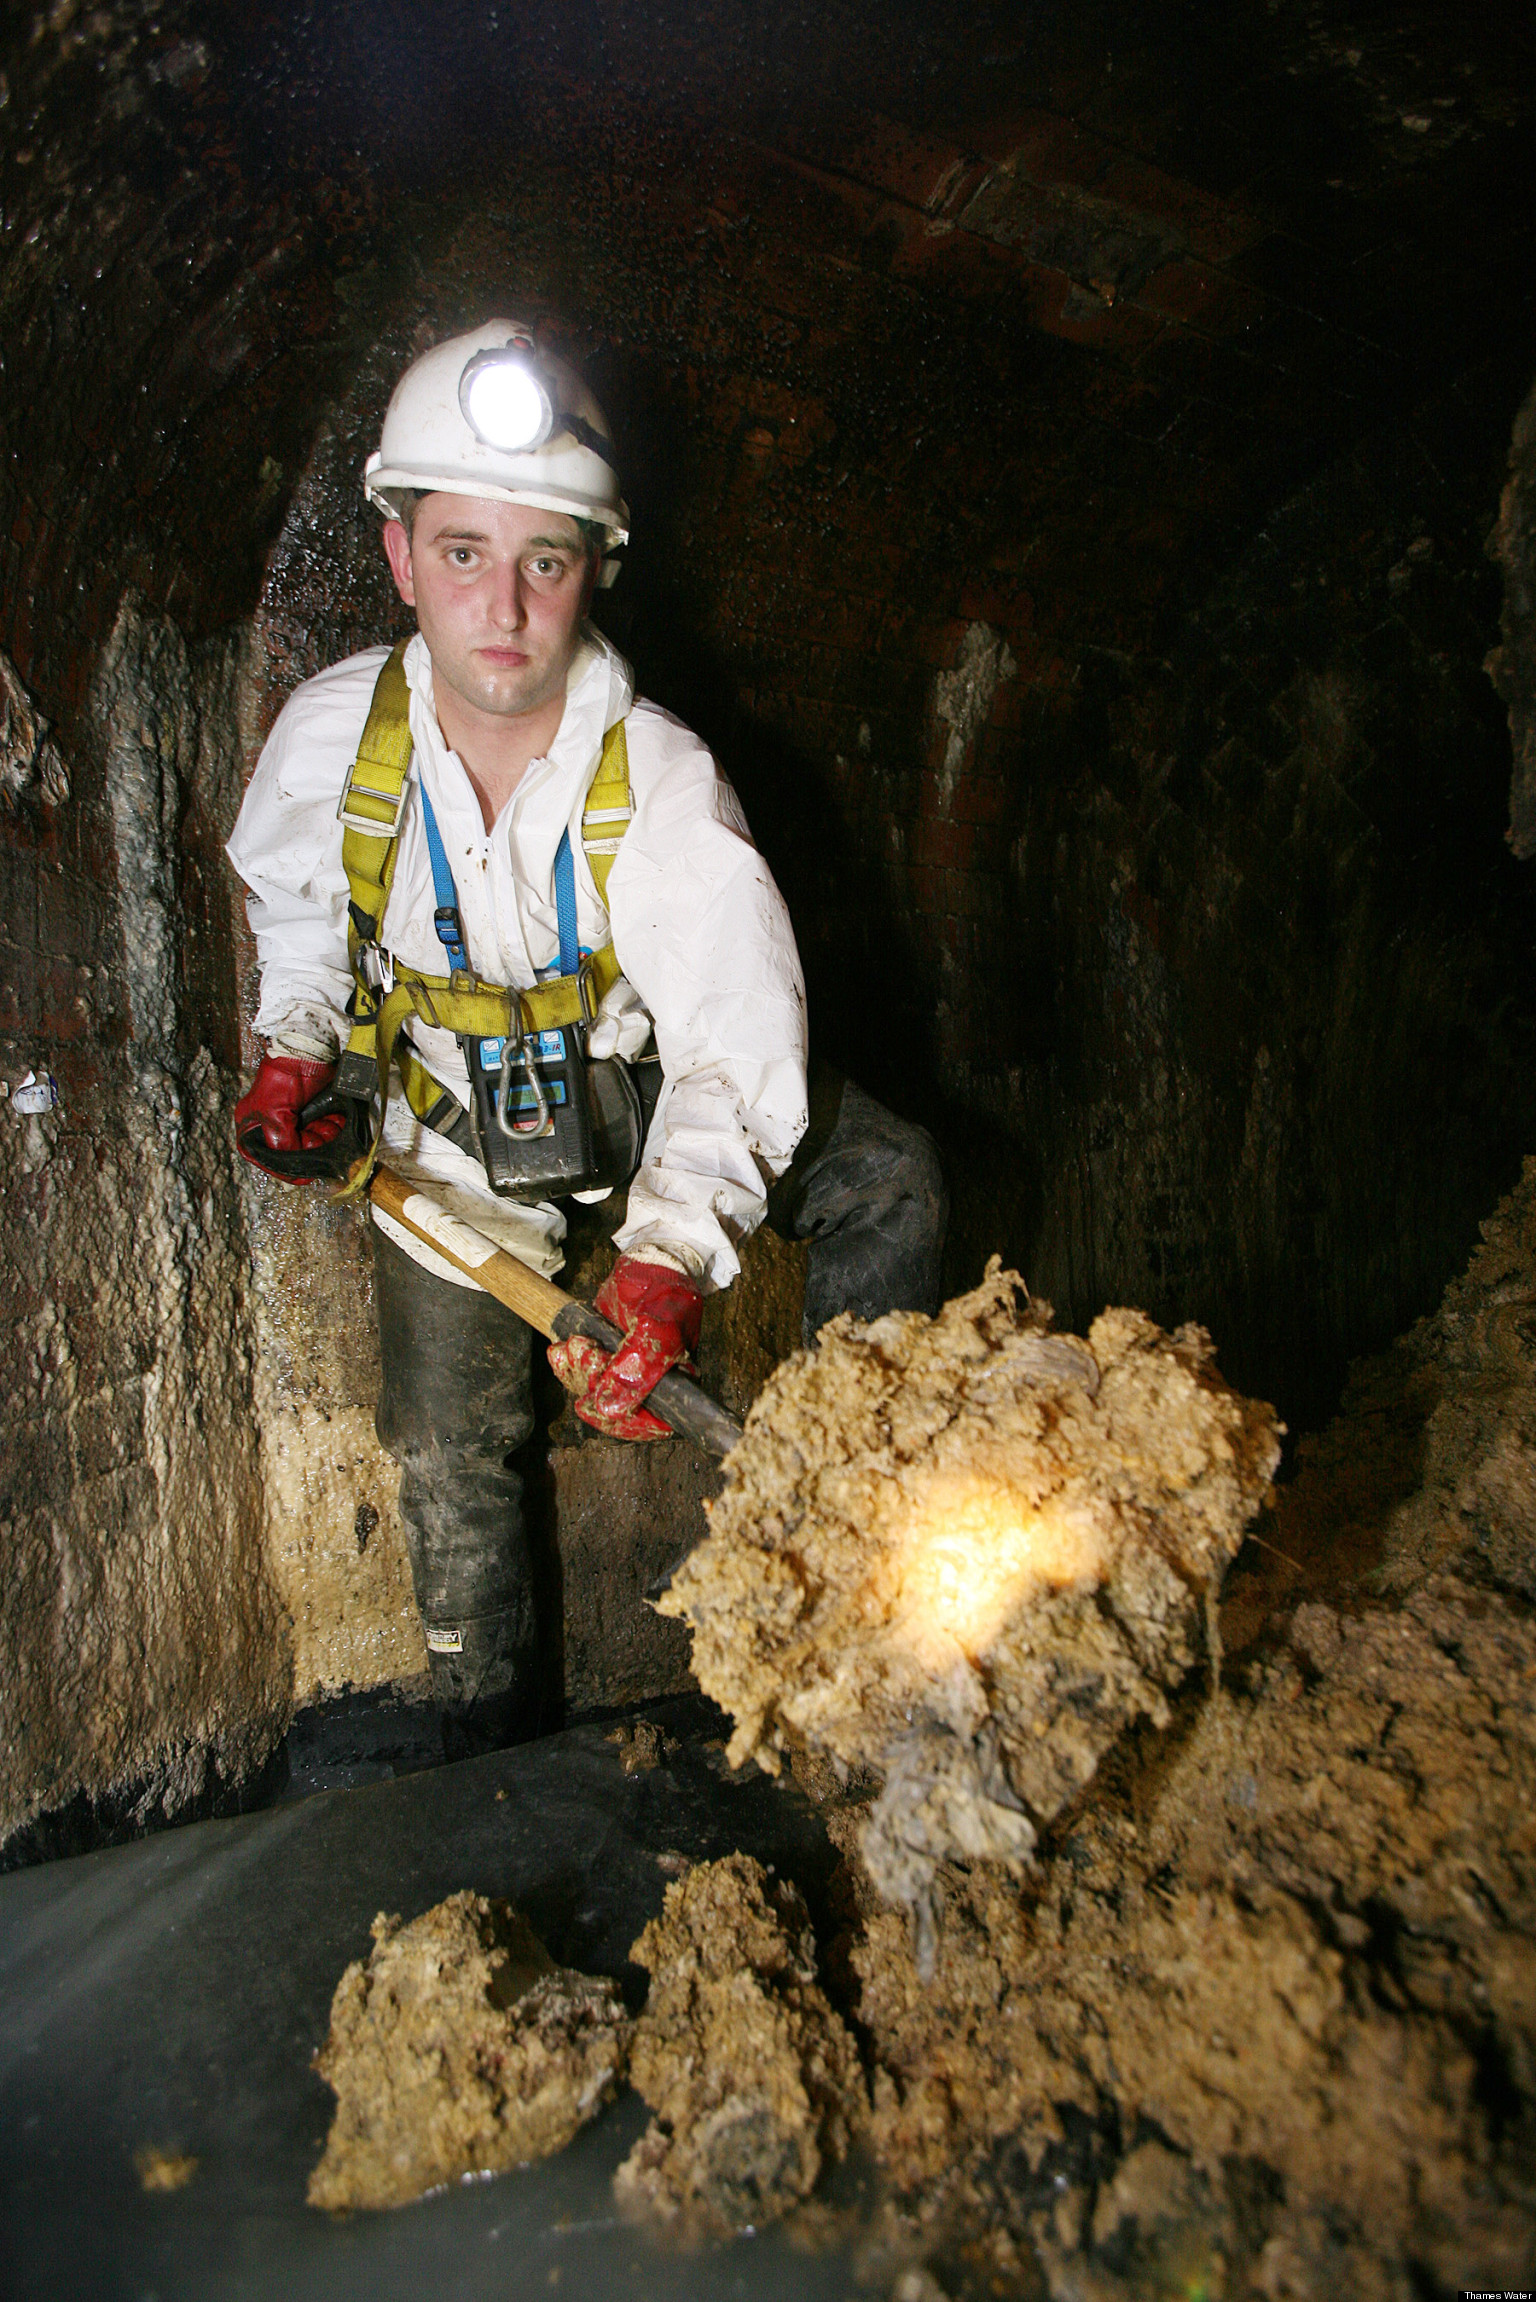 old fashioned kitchen sinks french country accessories london sewer 'fatbergs' to be used fuel world's biggest ...